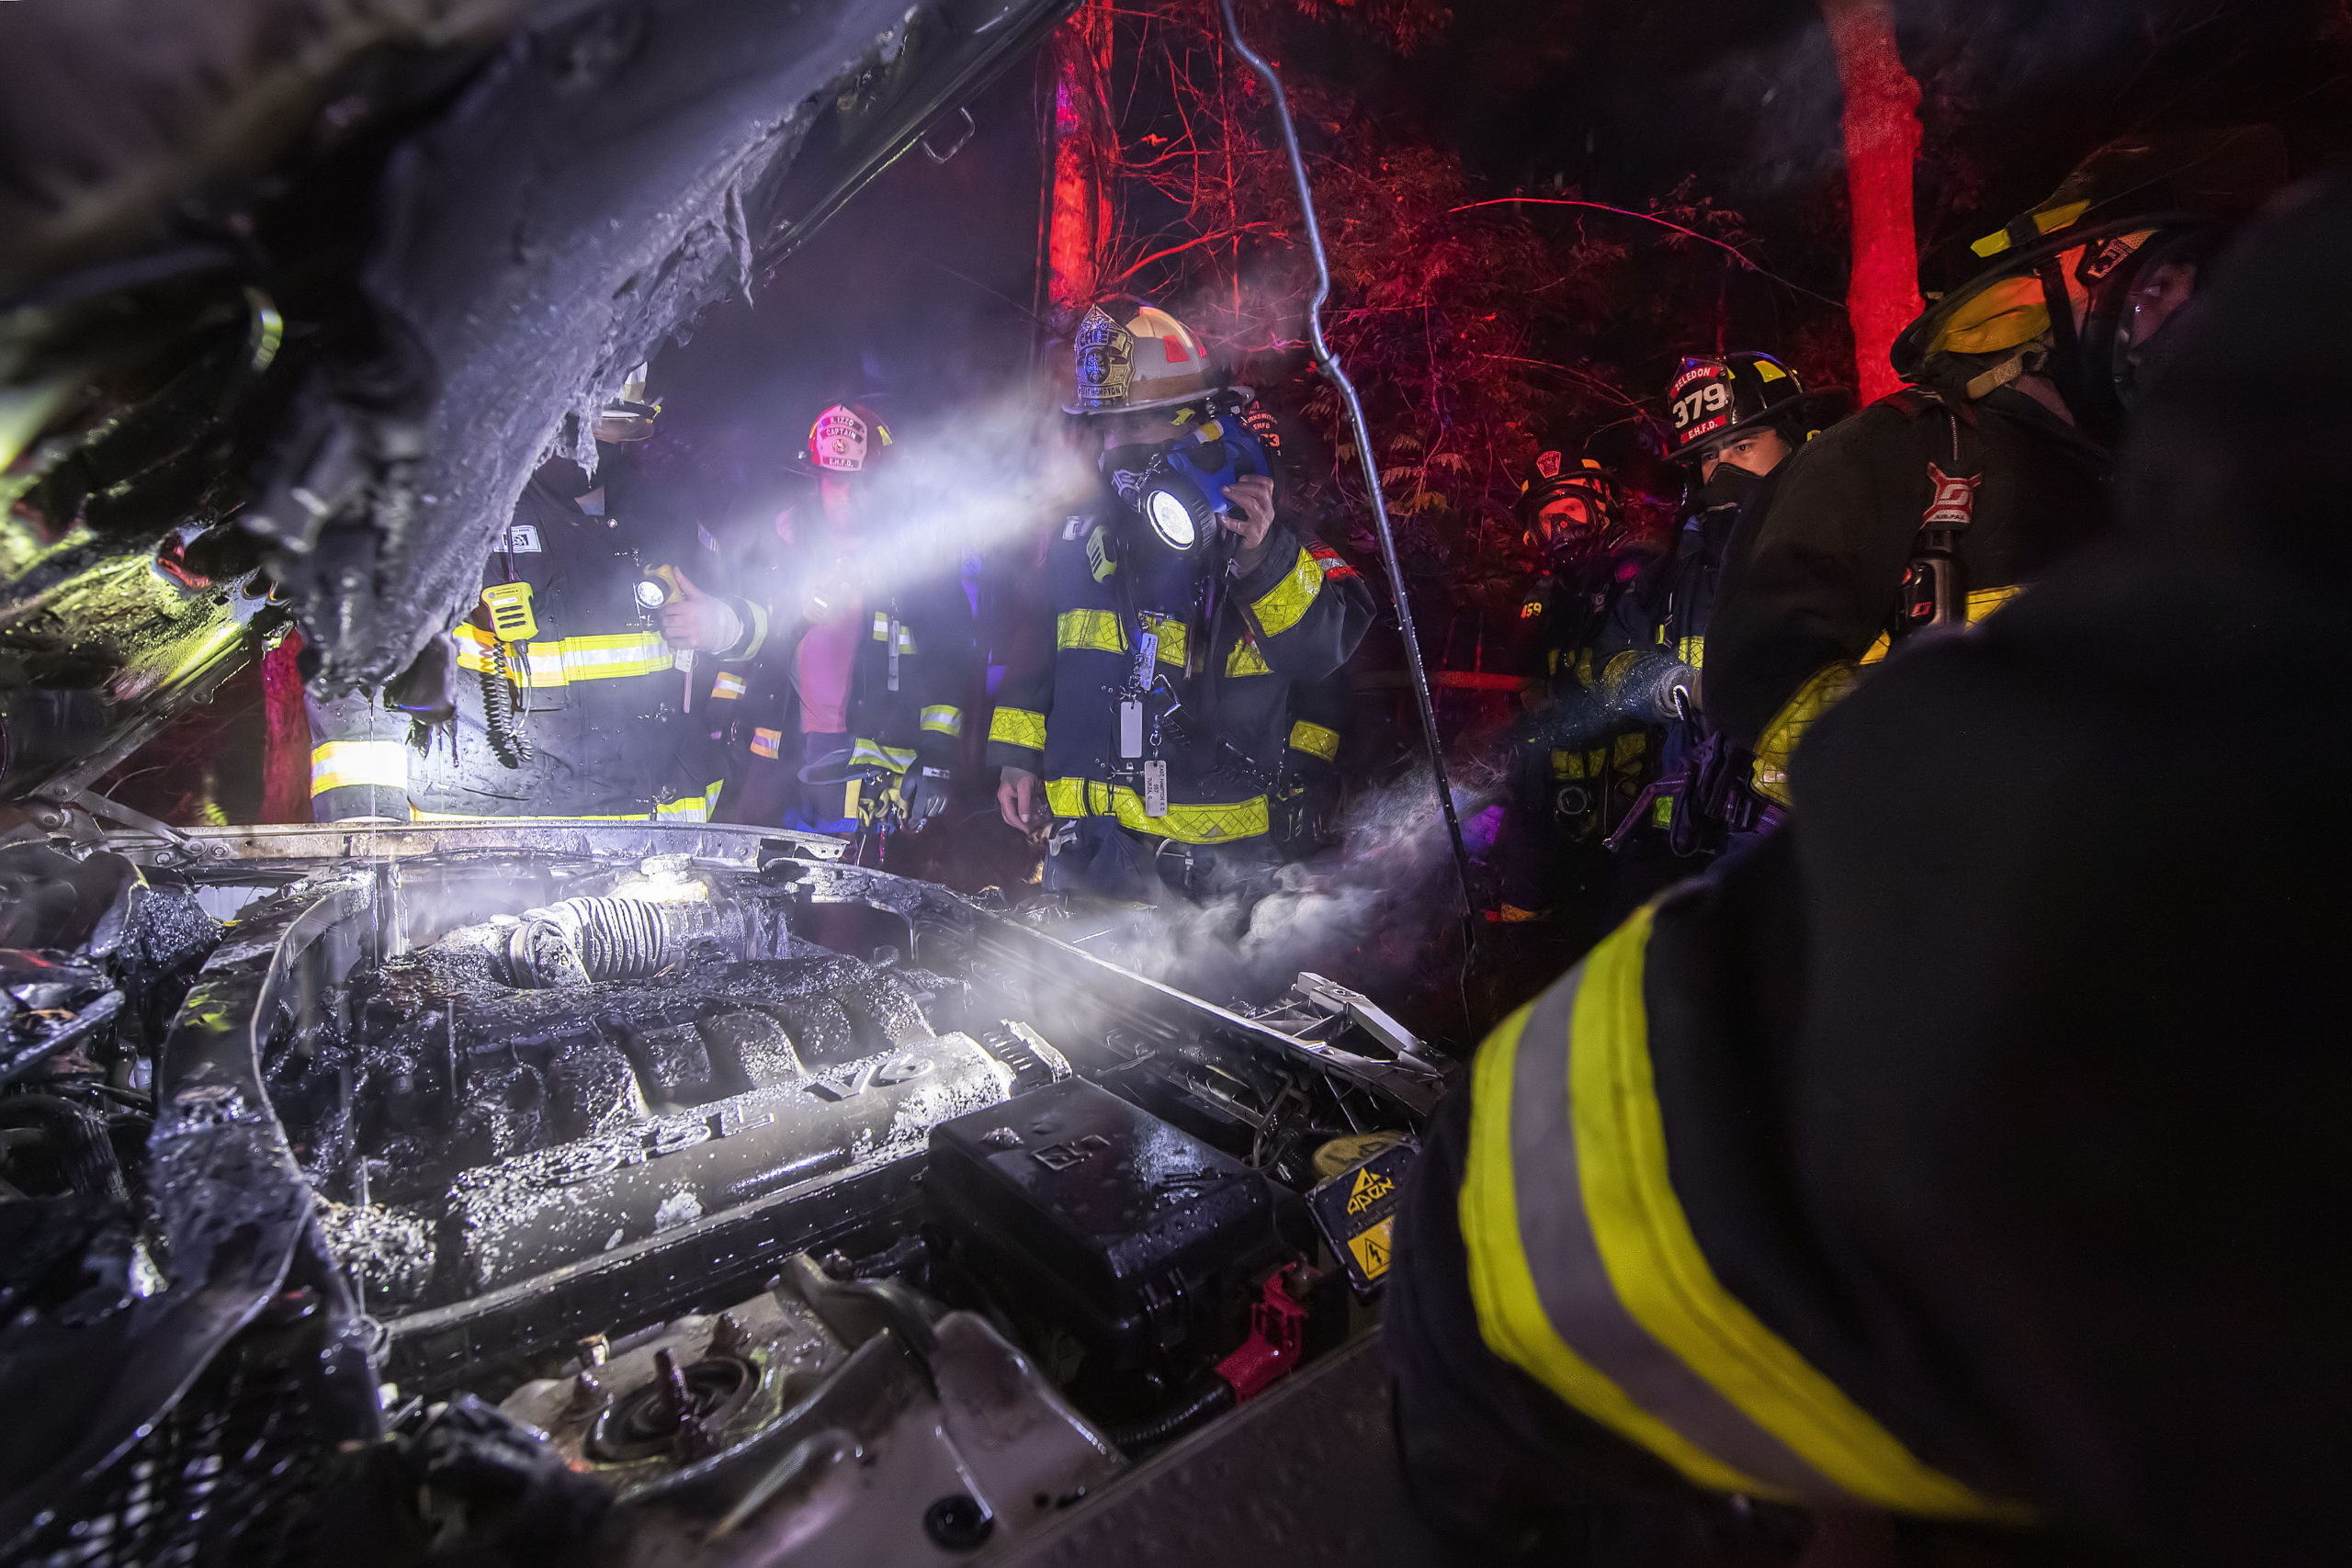 The East Hampton Fire Department responded to a car fire on Friday night.